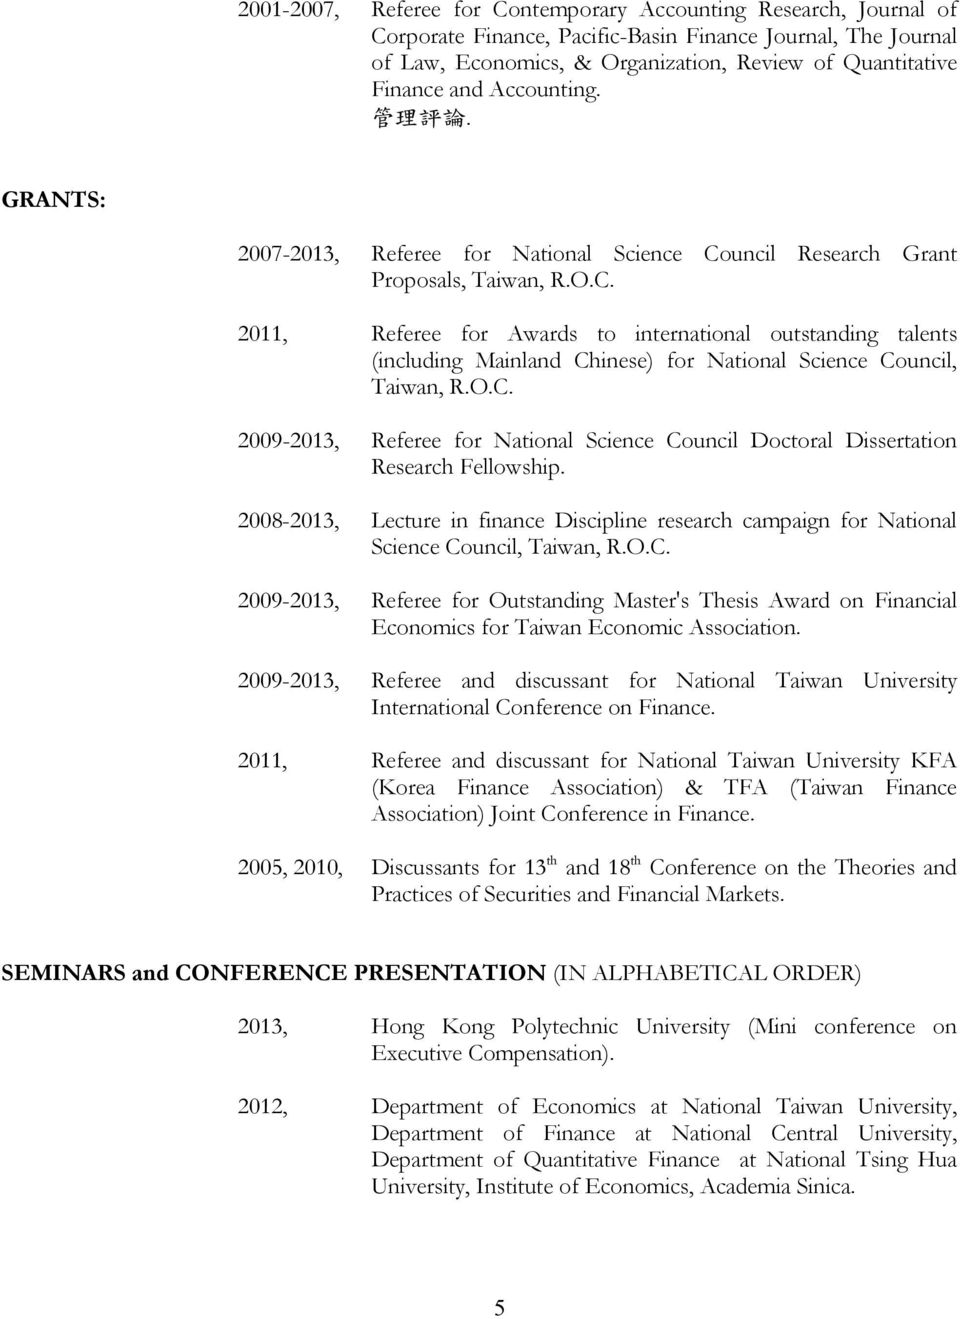 uncil Research Grant Proposals, Taiwan, R.O.C. 2011, Referee for Awards to international outstanding talents (including Mainland Chinese) for National Science Council, Taiwan, R.O.C. 2009-2013, Referee for National Science Council Doctoral Dissertation Research Fellowship.